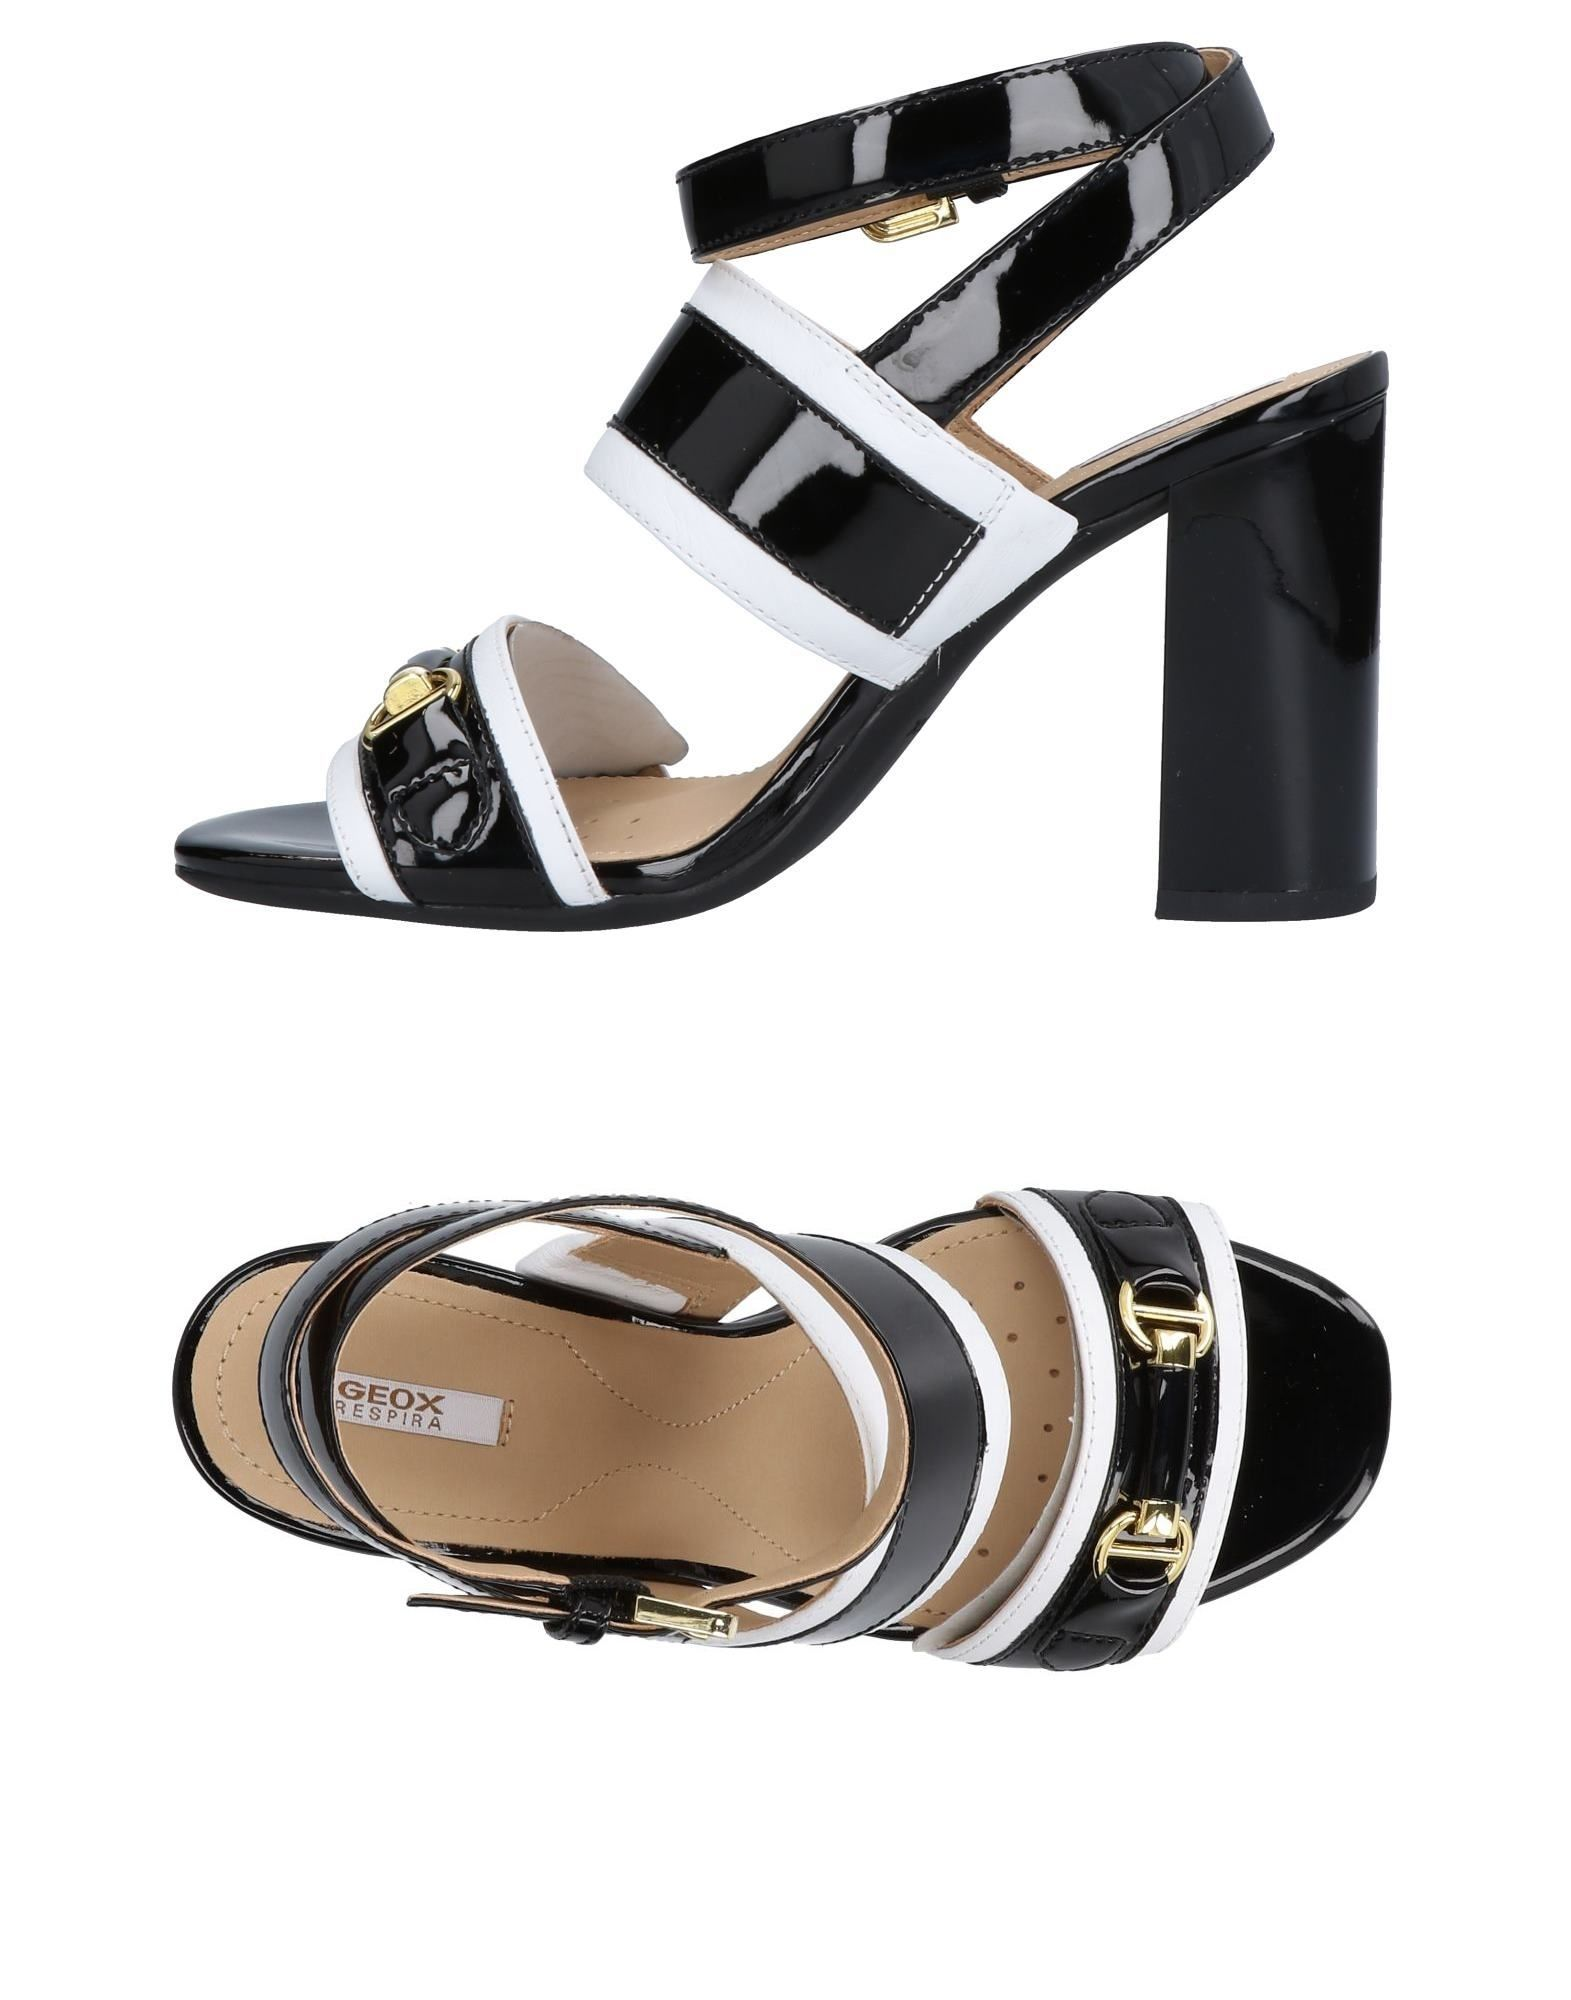 Geox Sandals Sandals - Women Geox Sandals Geox online on  Canada - 11475573CL 3a2285